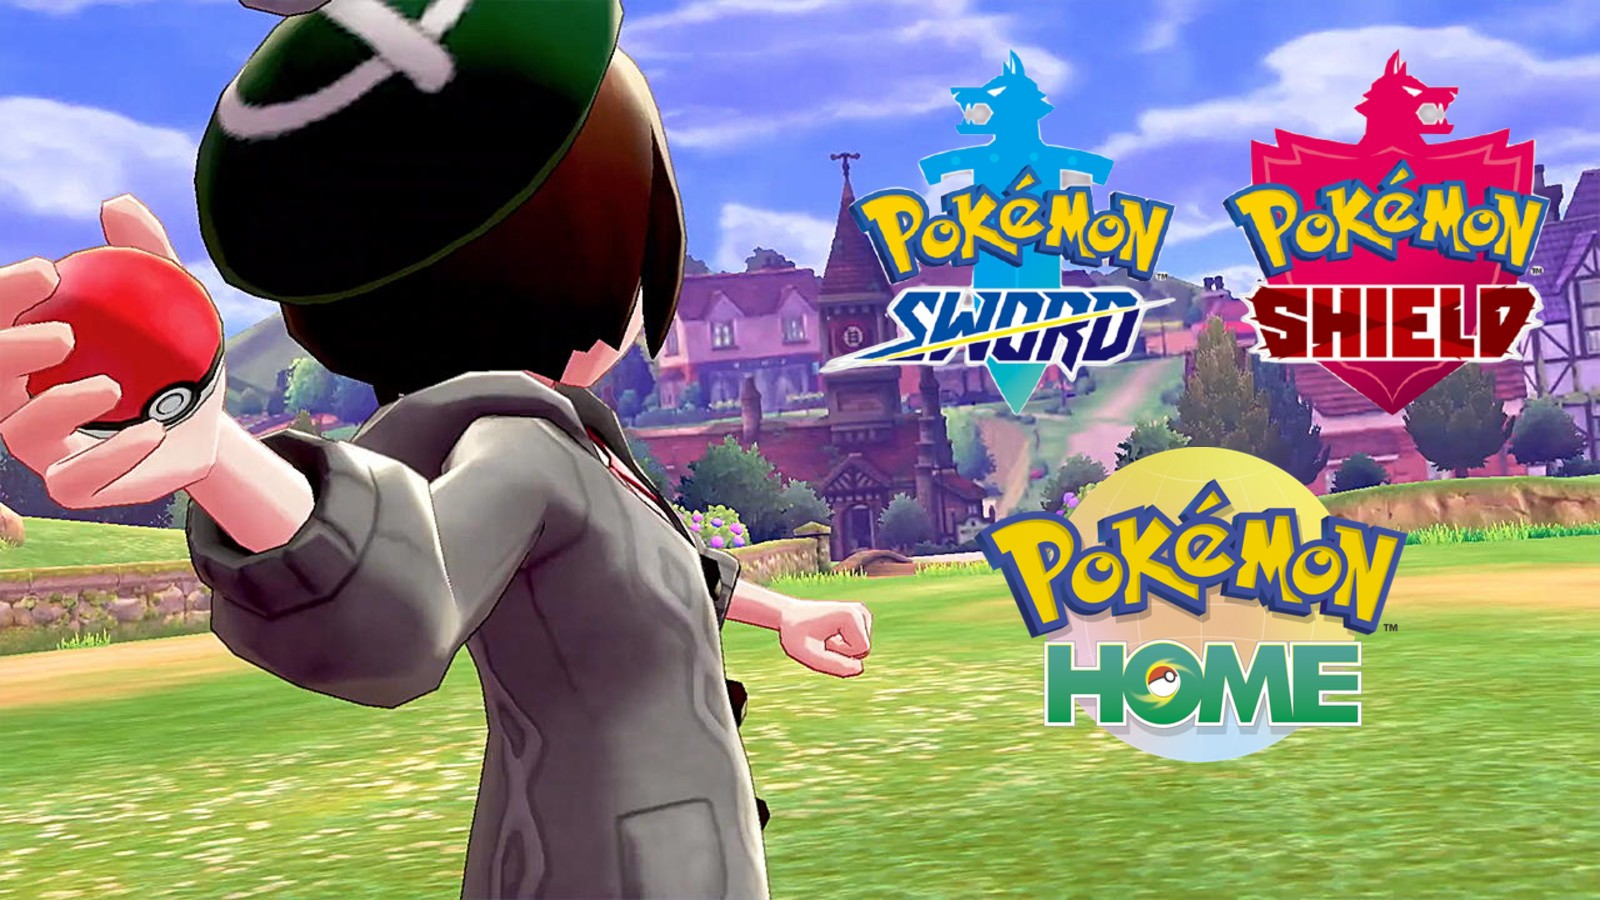 Pokemon Home/ Sword & Shield